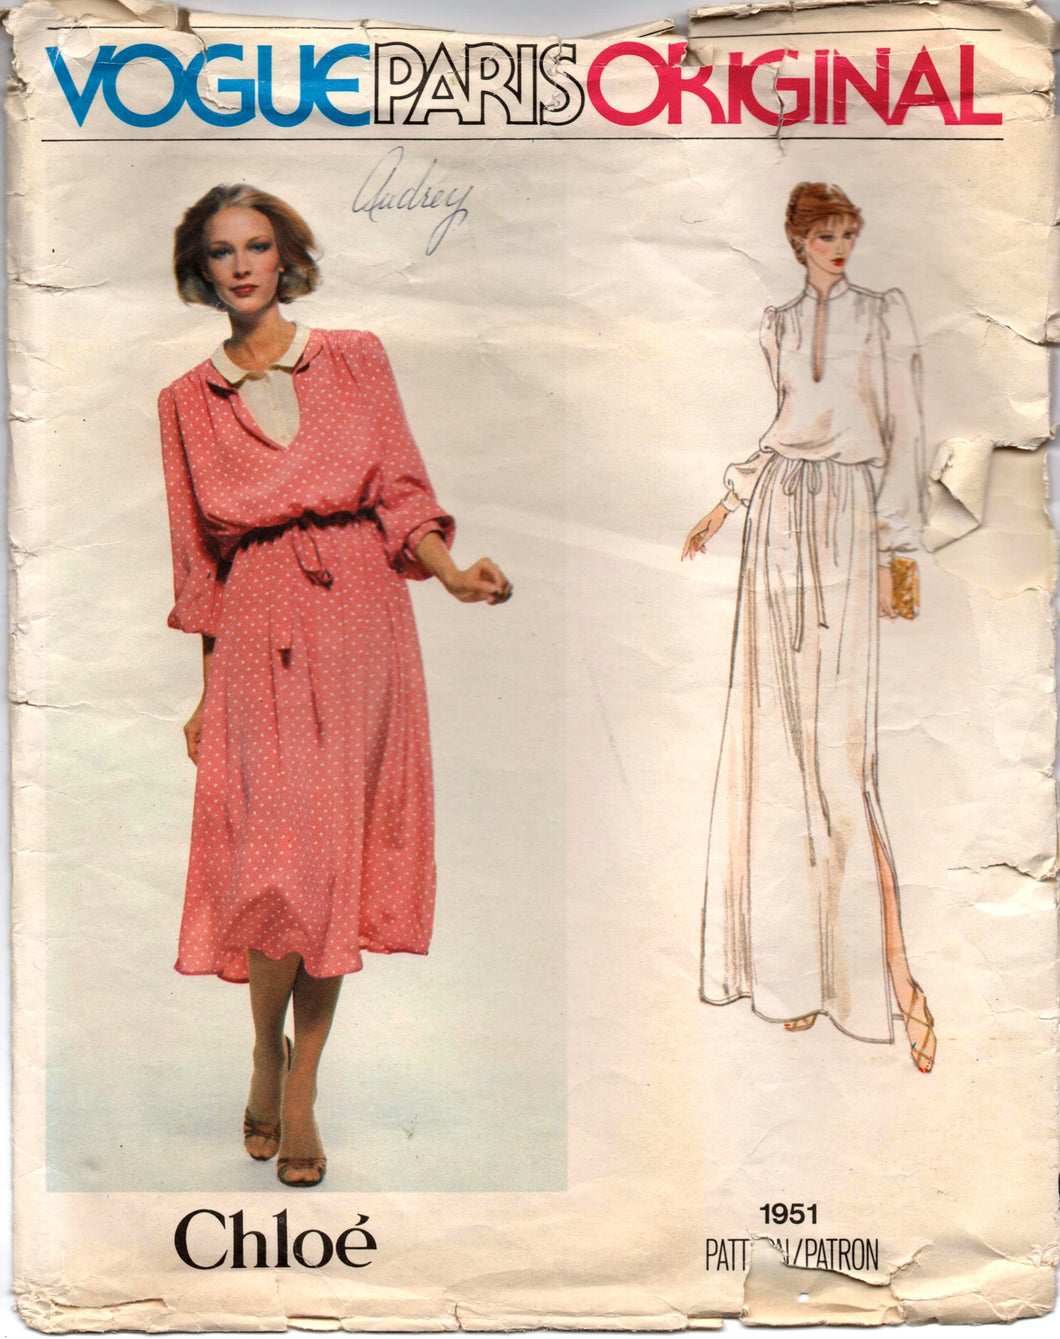 1970's Vogue Paris Original Maxi or Day Dress with deep V neck and Bloused top Pattern - CHLOE - Bust 36